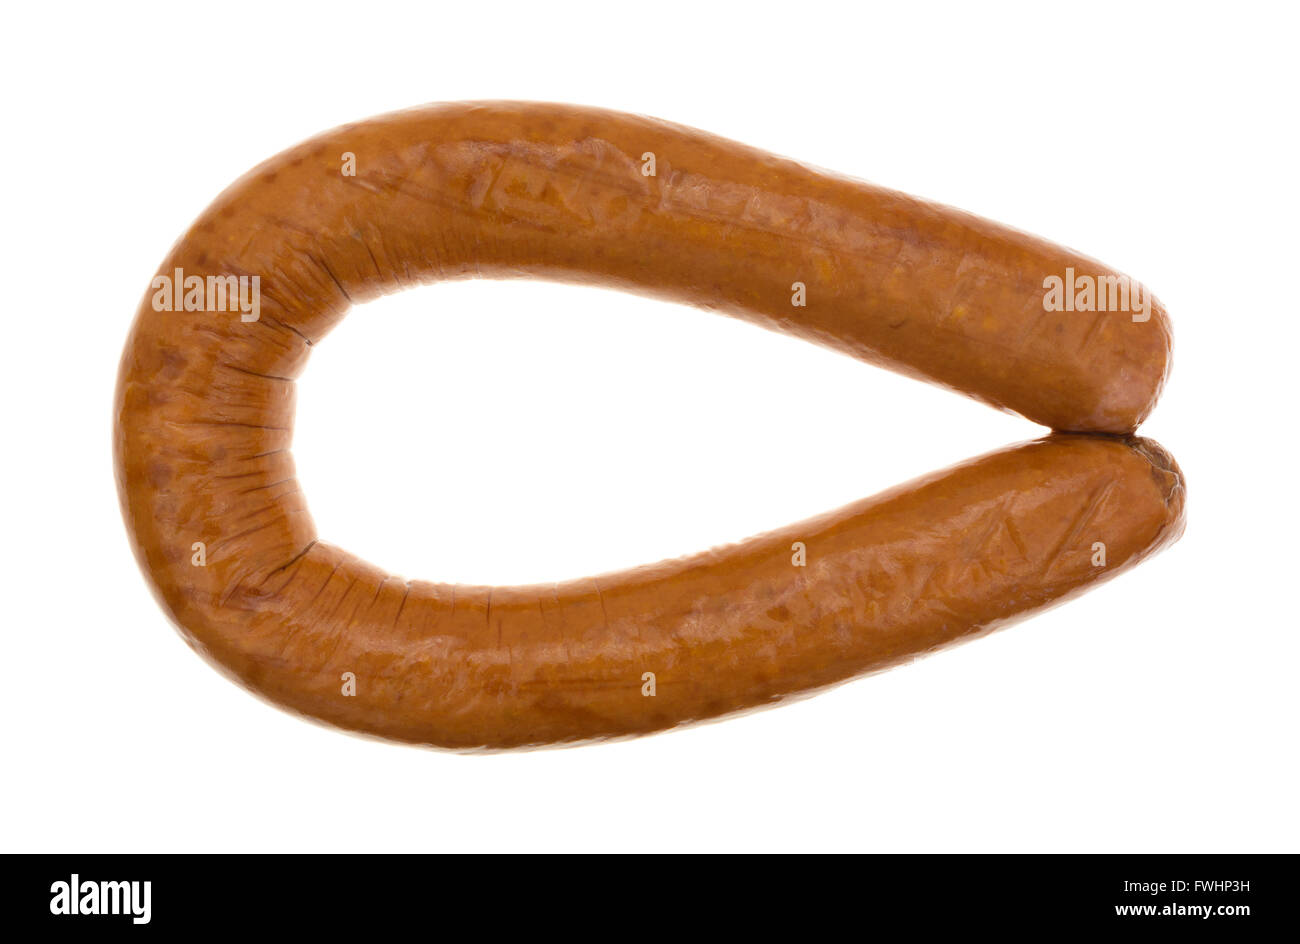 top view of a bent full length reduced calorie kielbasa sausage